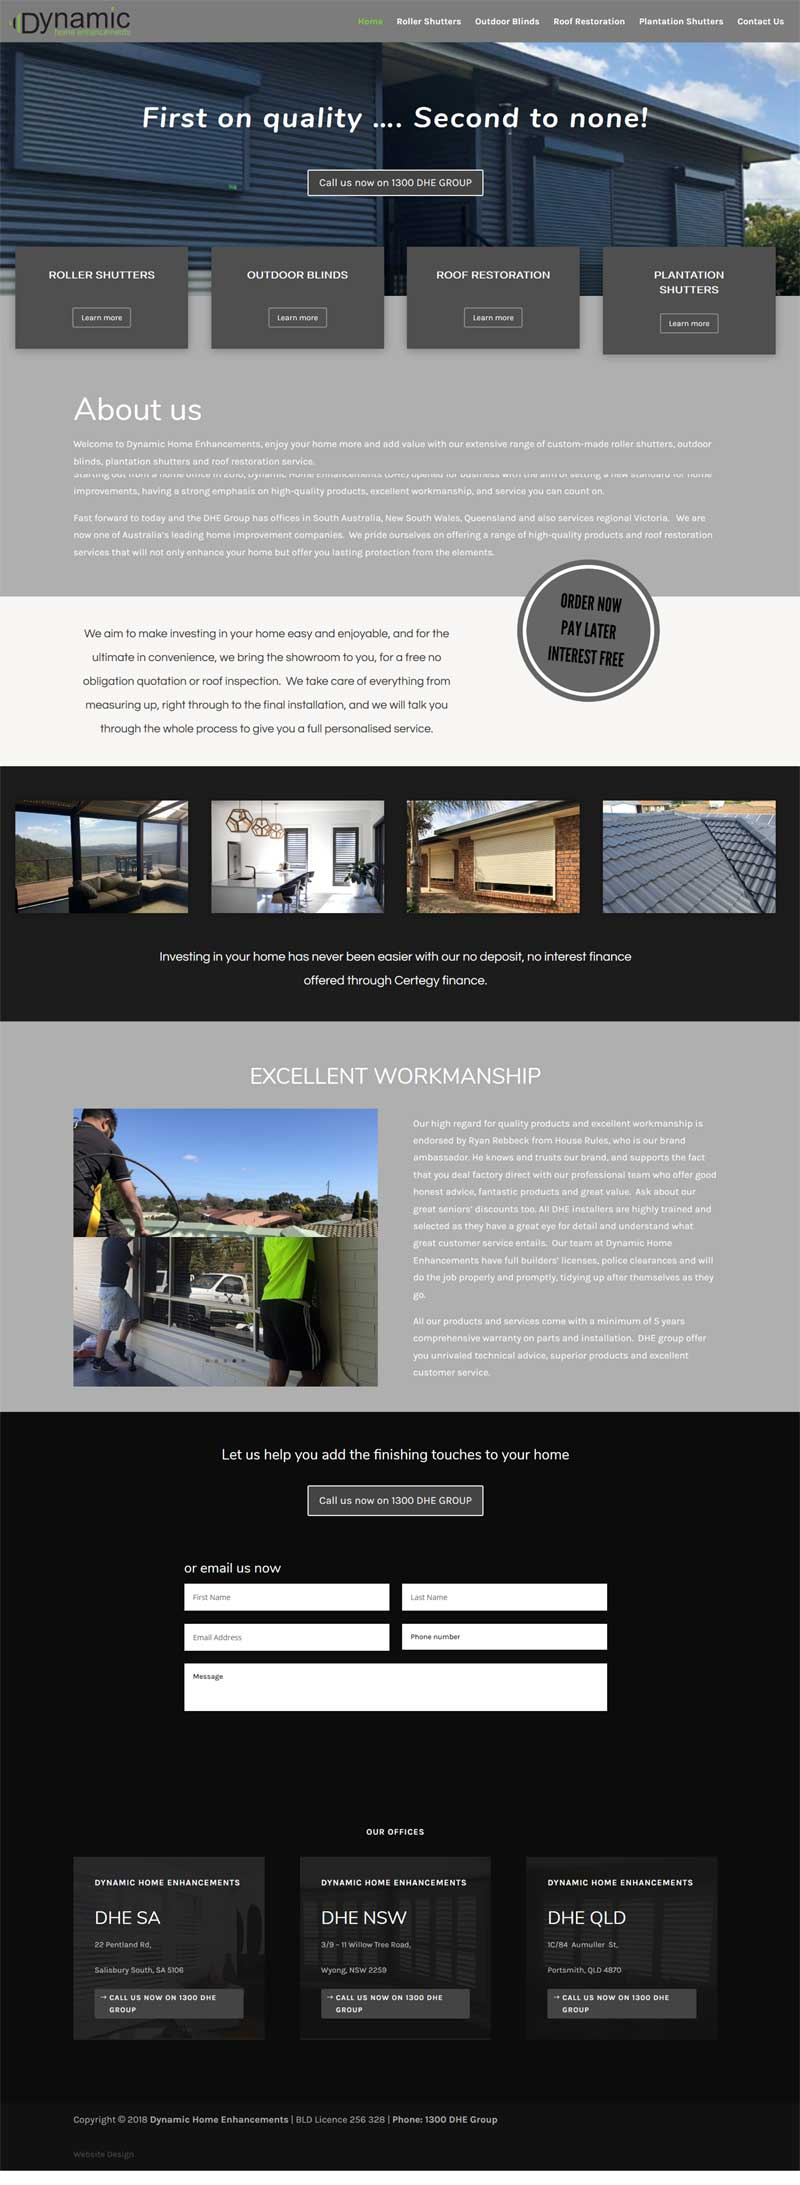 dhegroup website design portfolio adelaide